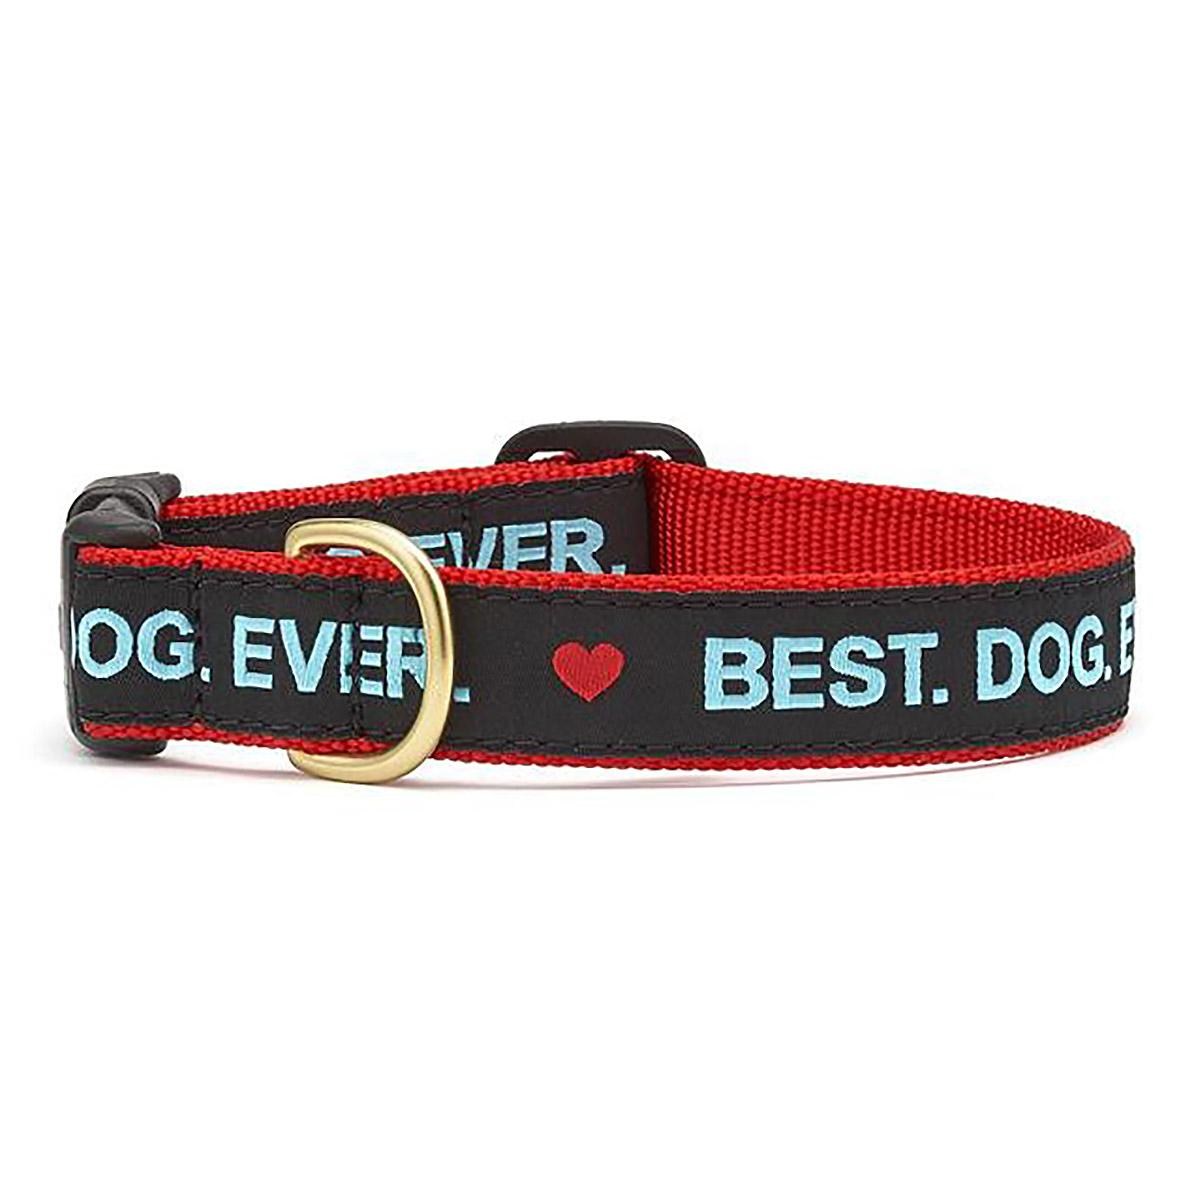 Best. Dog. Ever. Dog Collar by Up Country